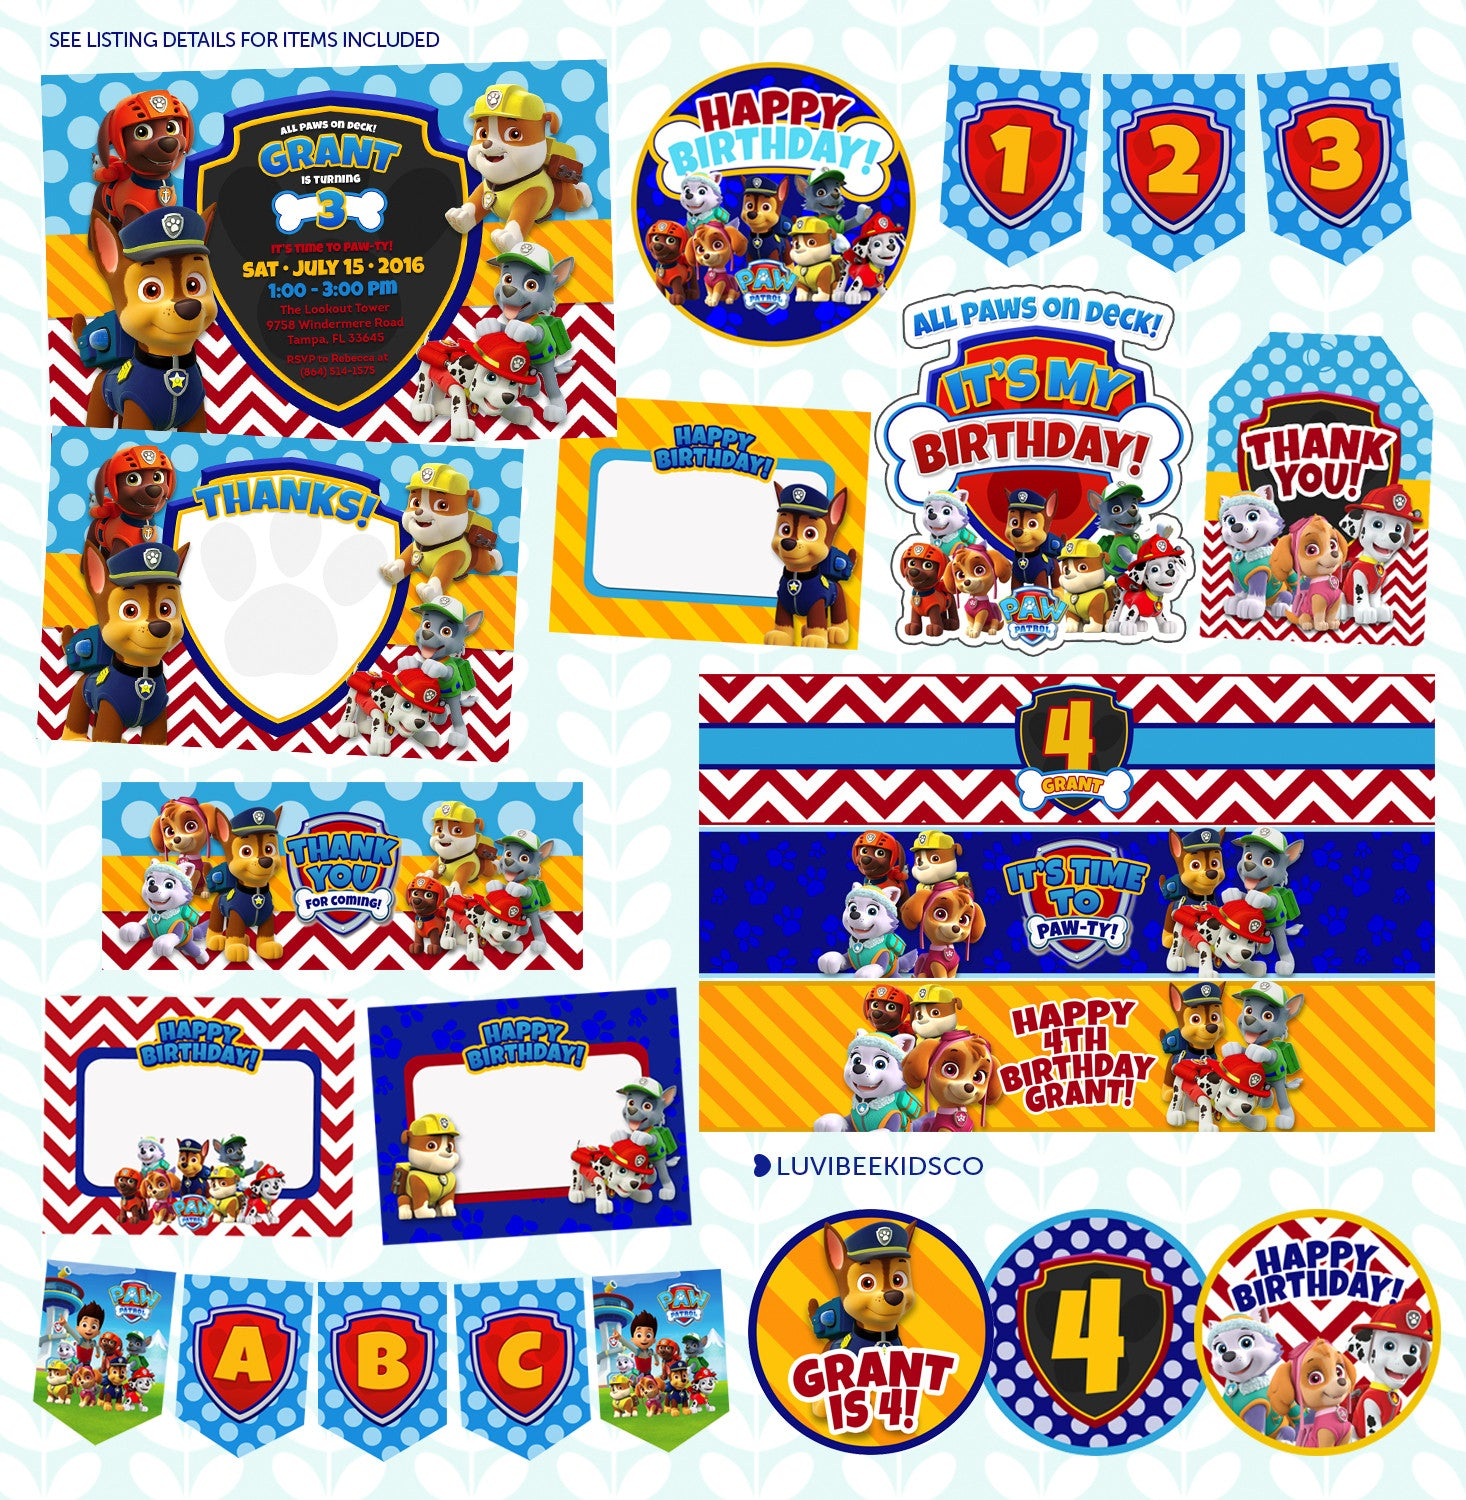 picture about Printable Paw Patrol Invitations named Paw Patrol Birthday Invitation - Printable Birthday Celebration Pack - Least complicated Really worth!